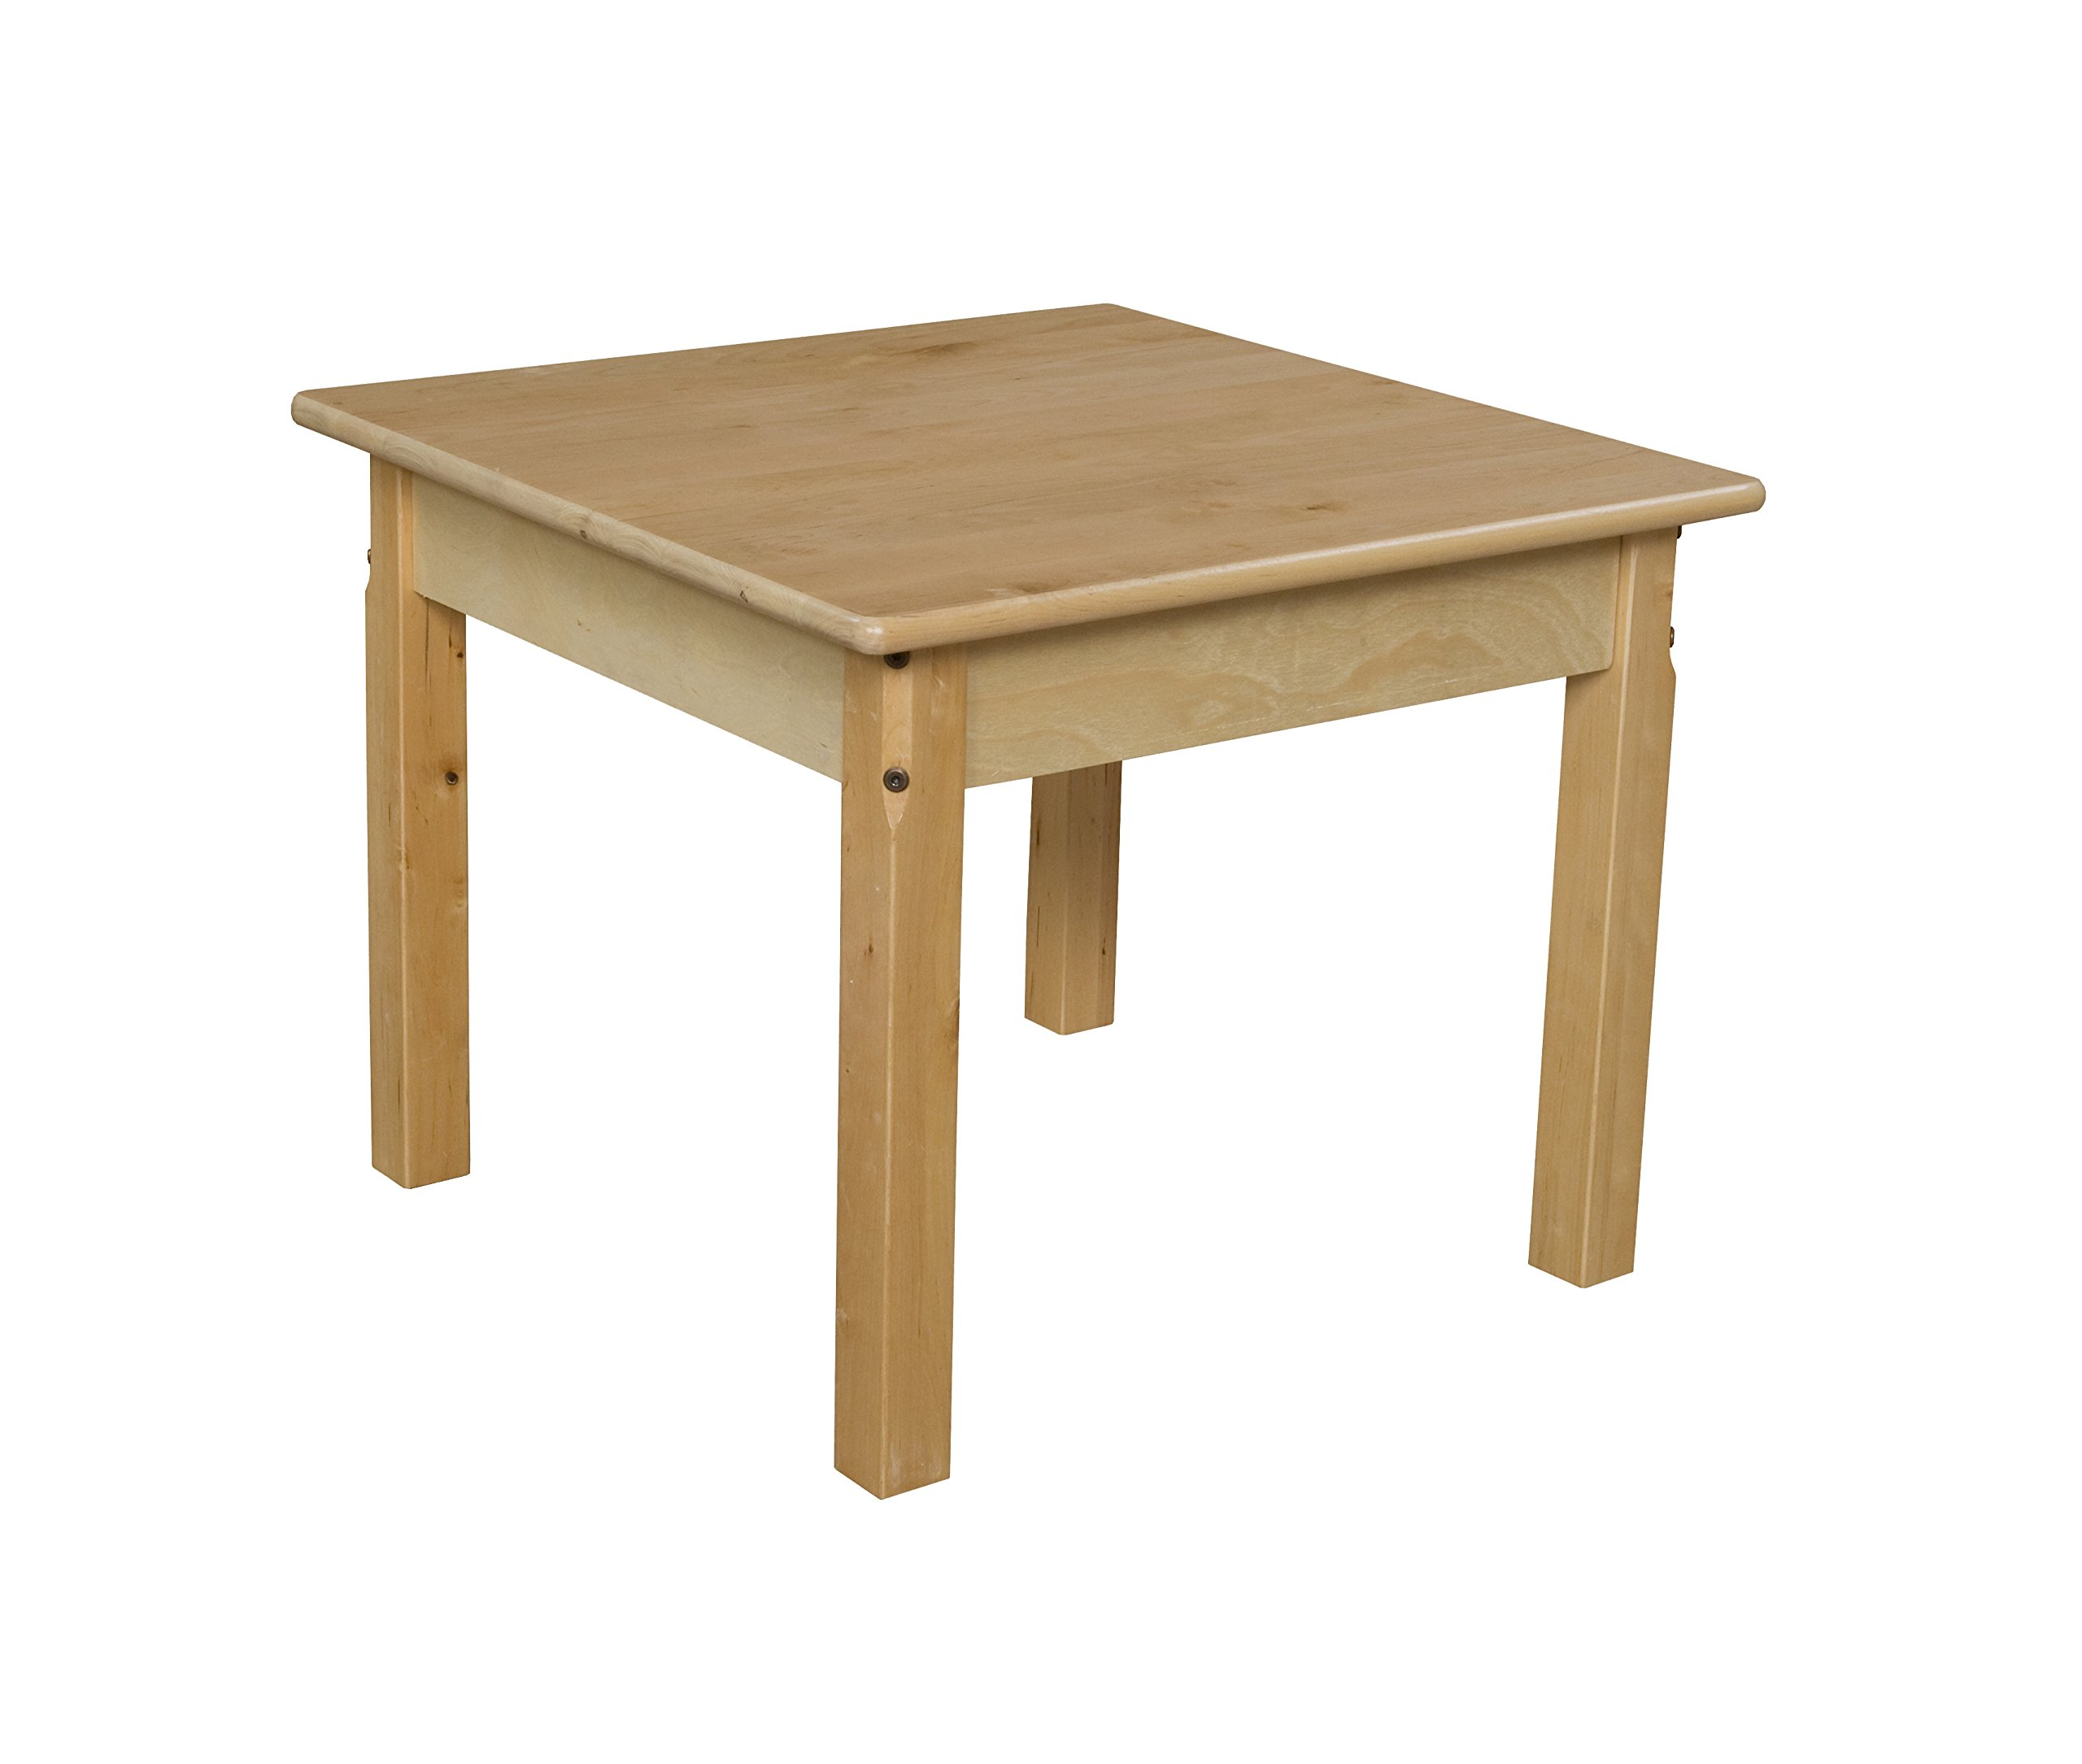 Wood Designs WD82418 Child's Table, 24'' Square with 18'' Legs